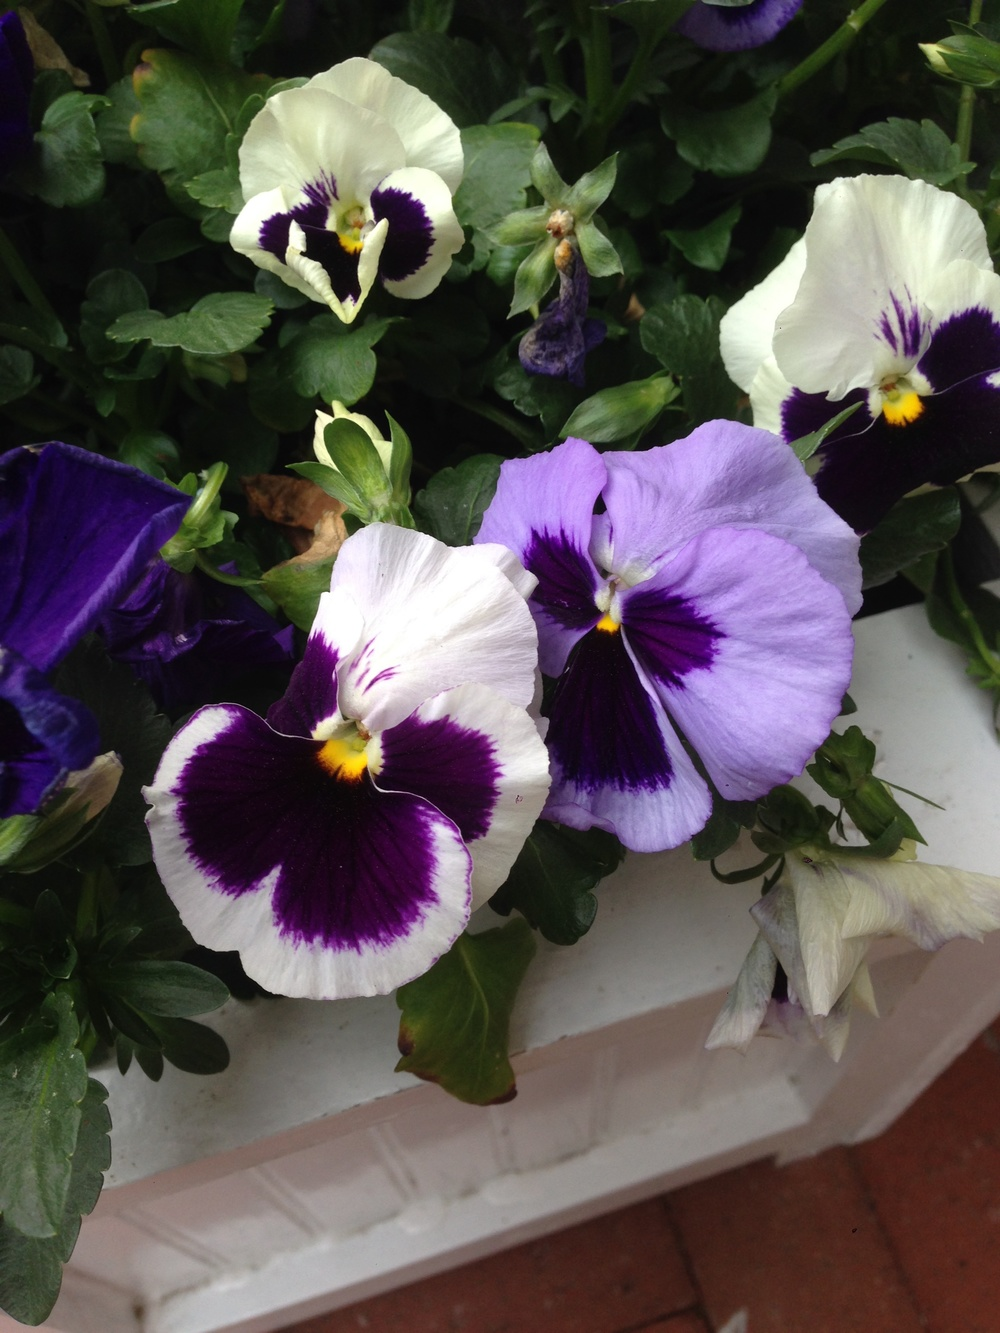 Pansies - harbingers of spring